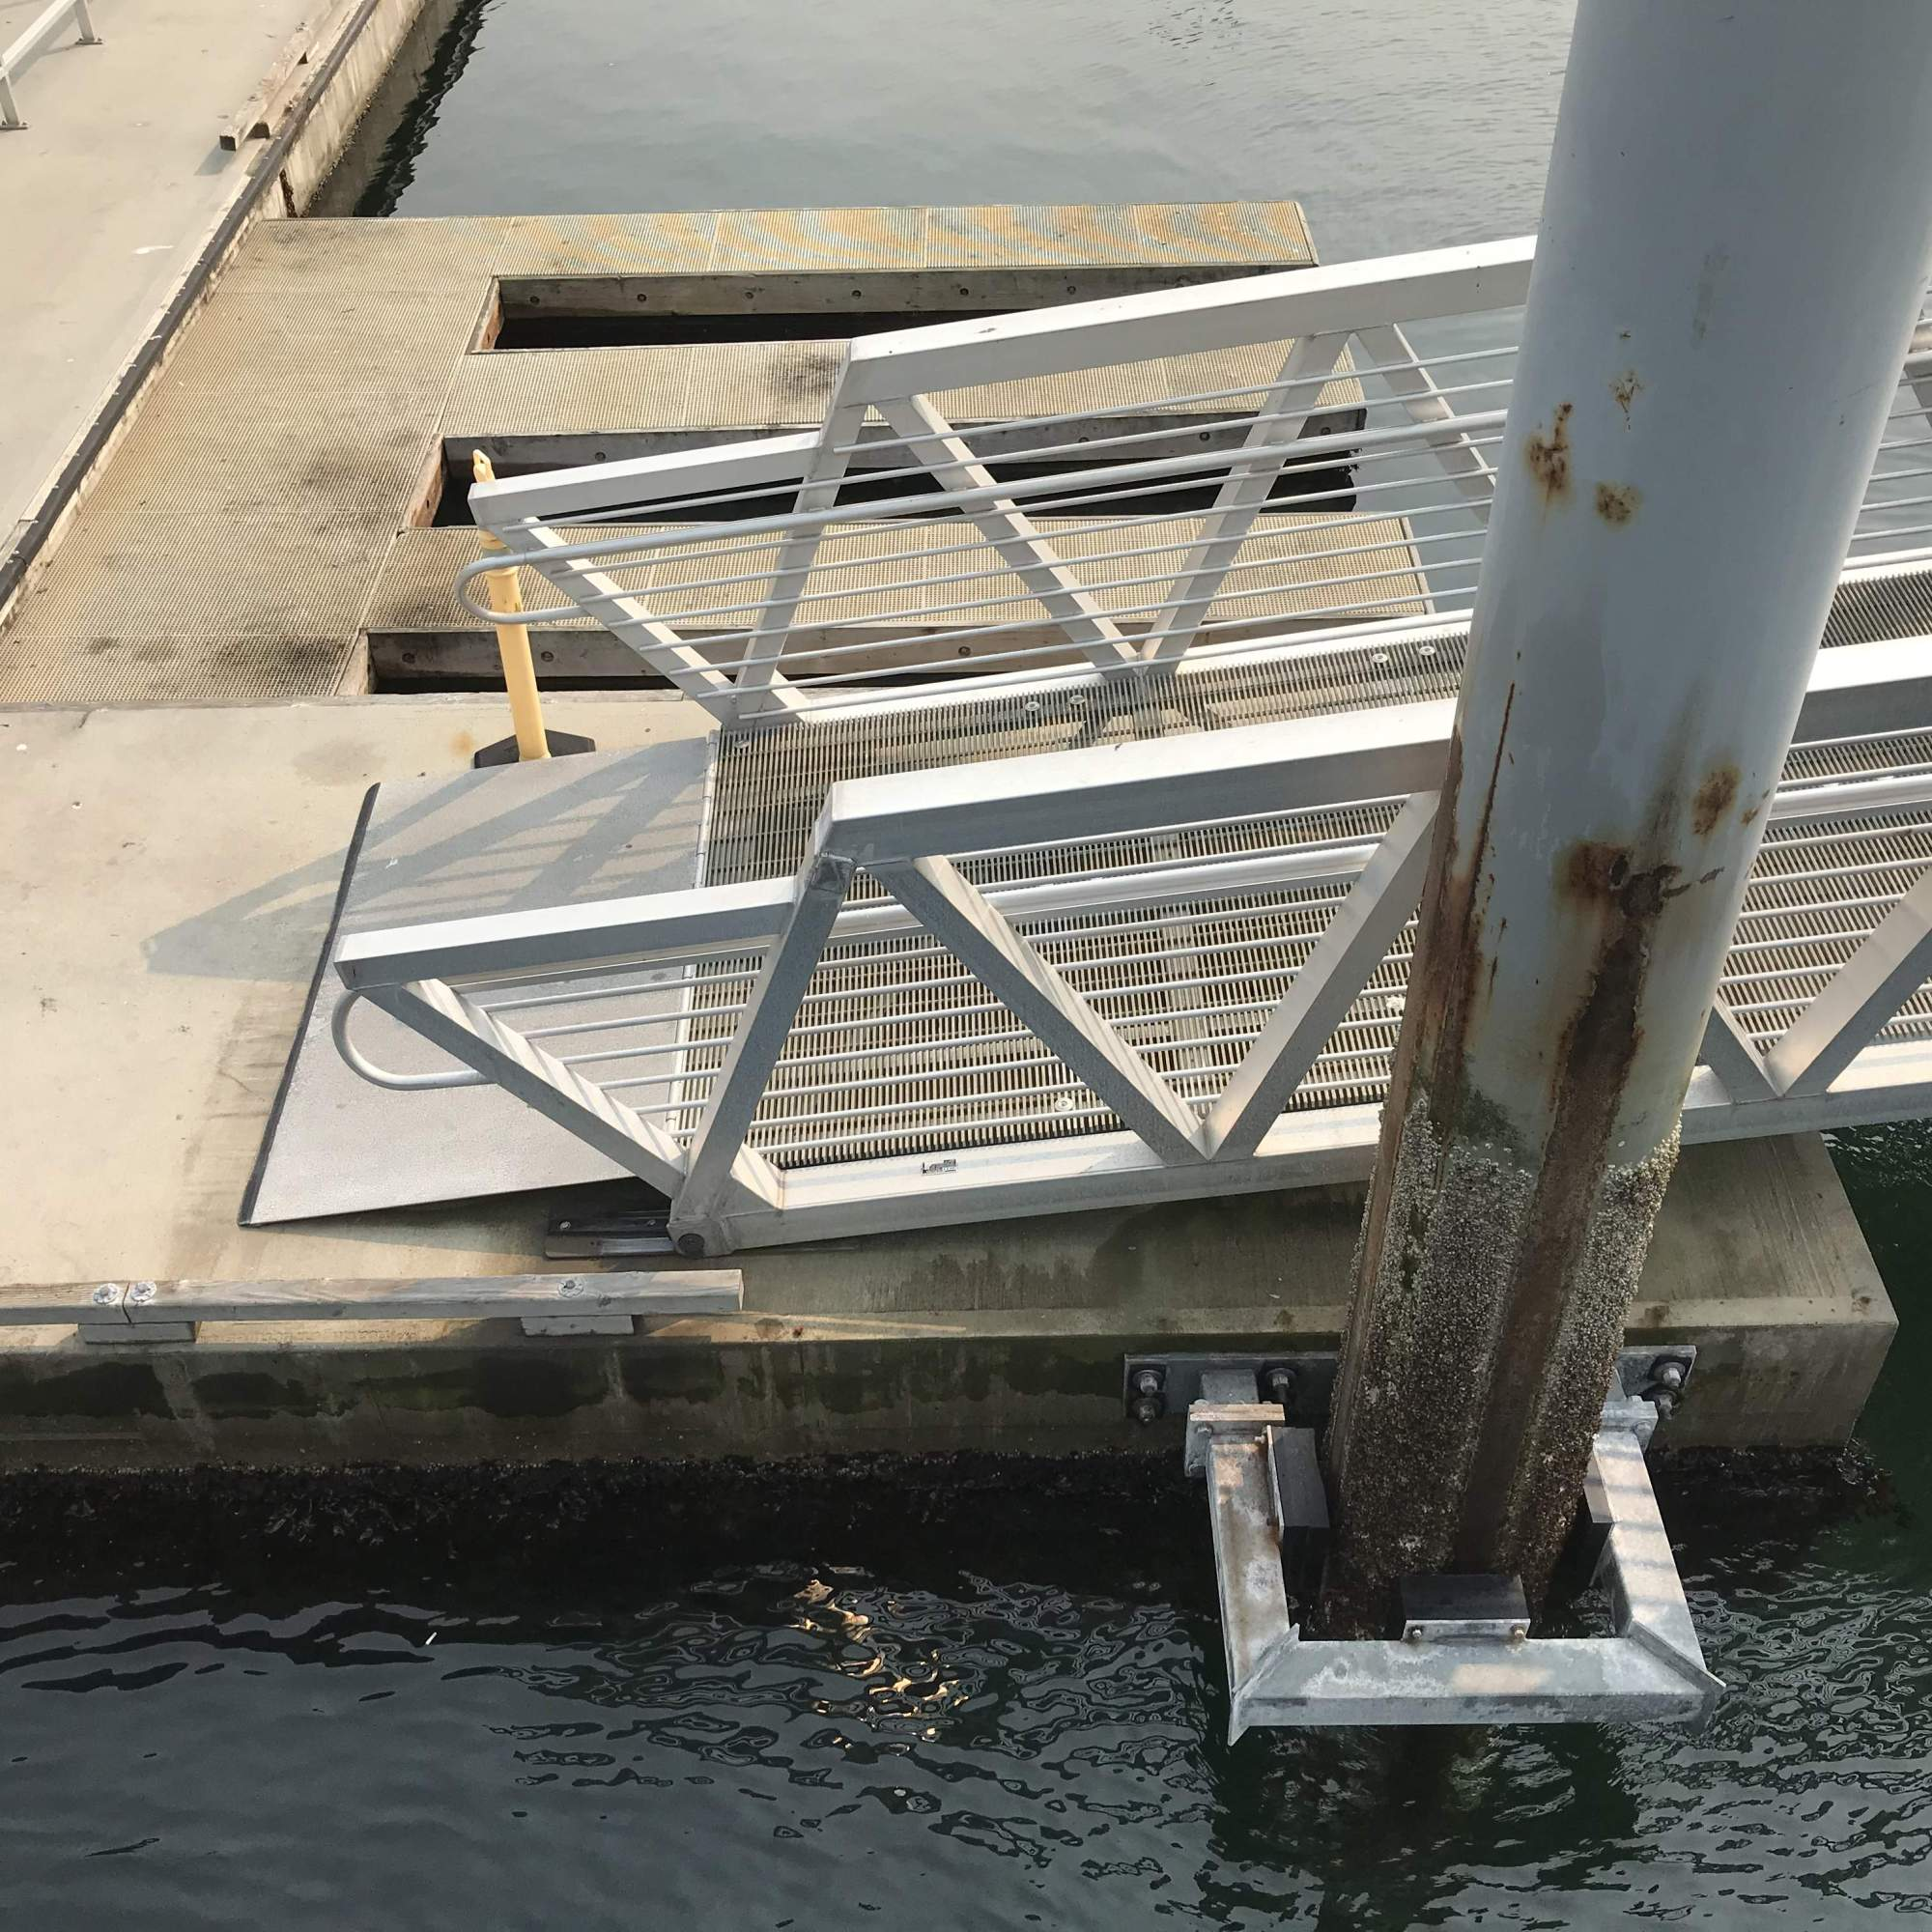 The passenger ramp is shown at its connection point to Float A